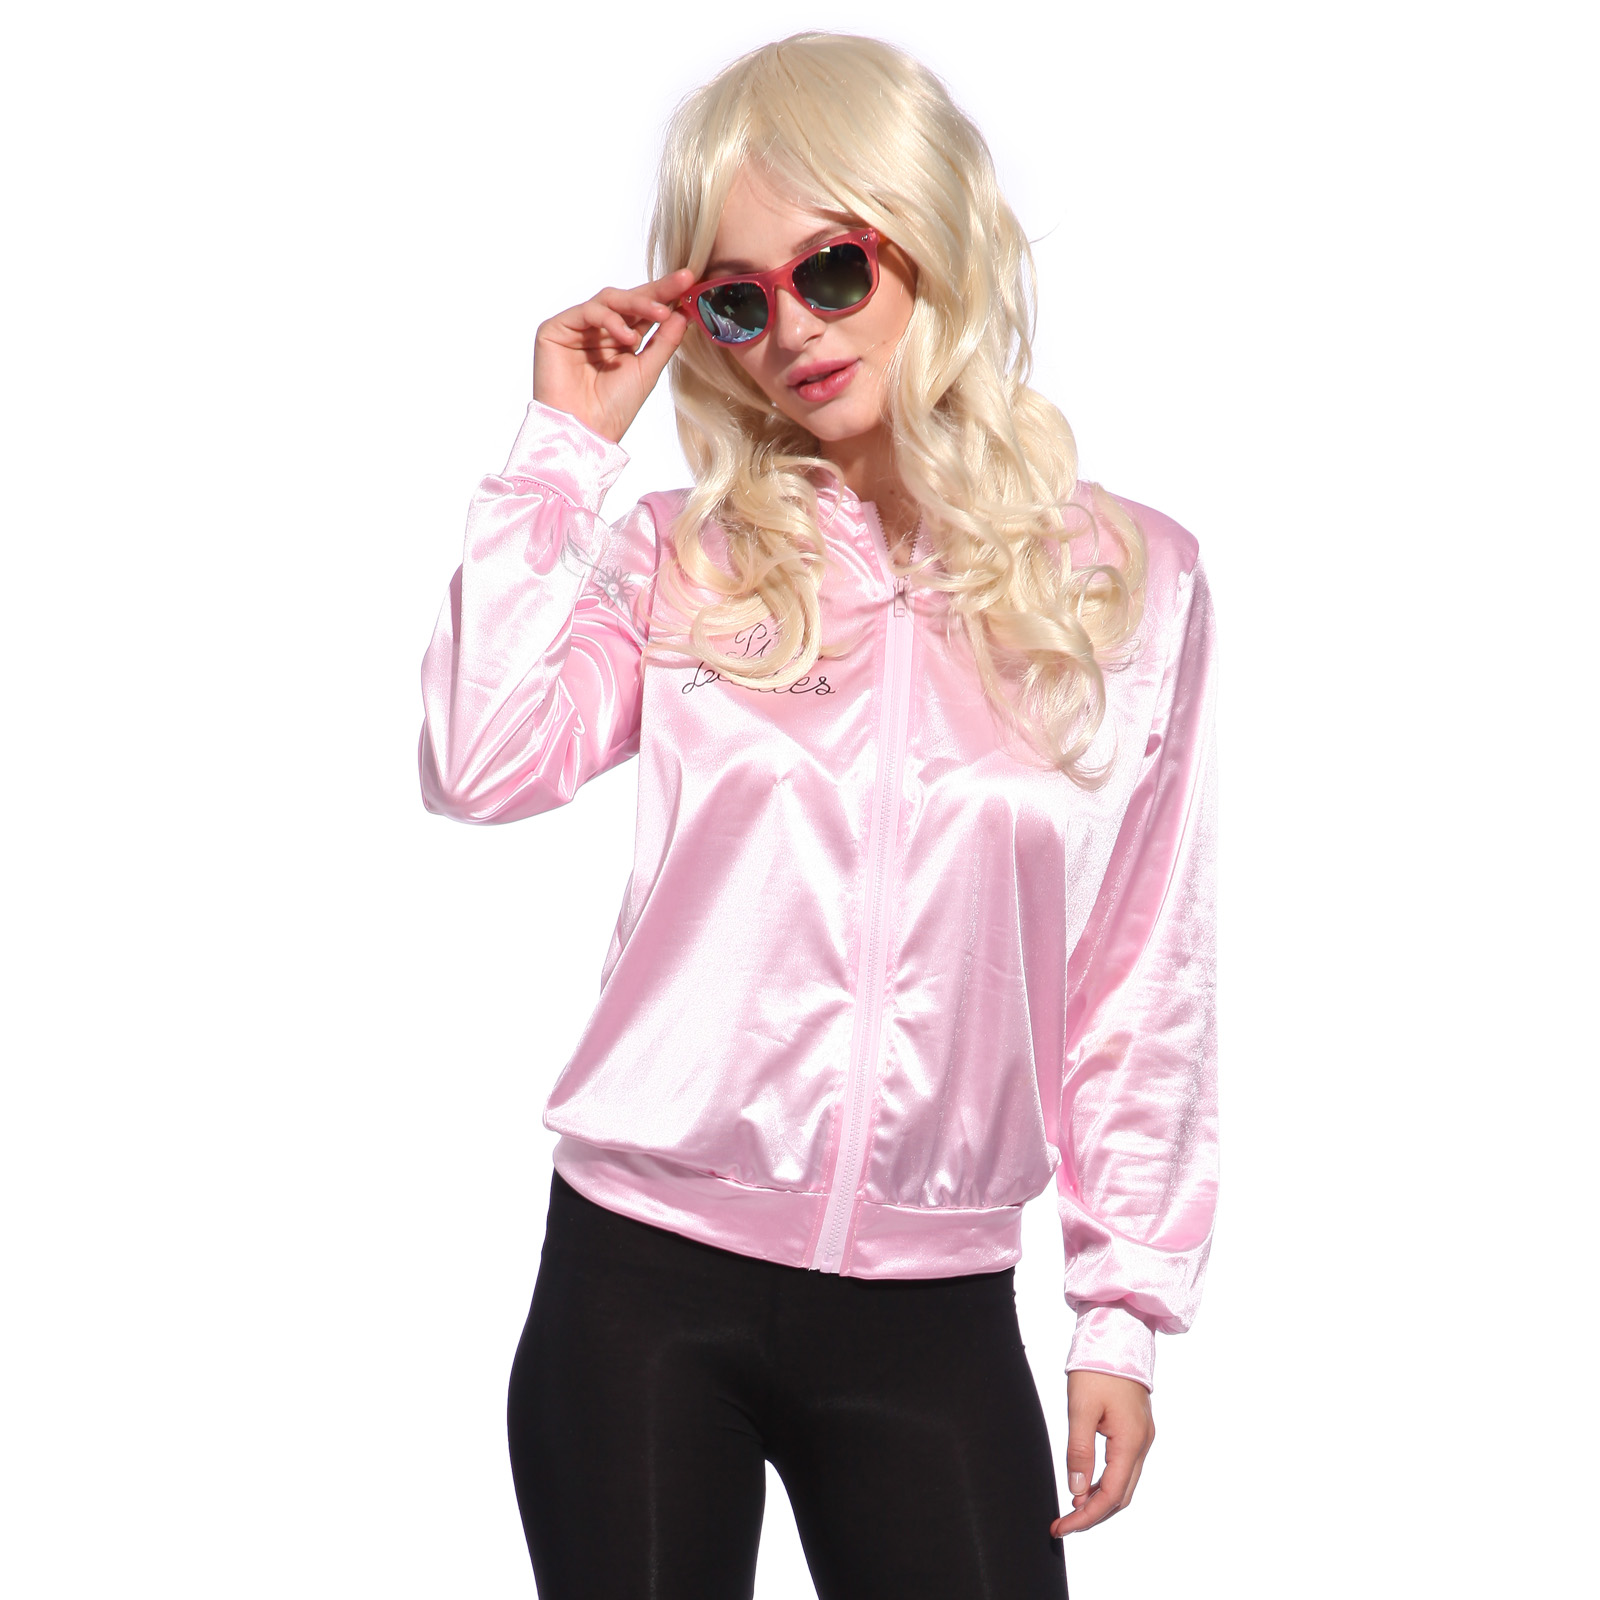 Retro 1950s Grease Pink Ladies Jacket Costume TShirt Party ...